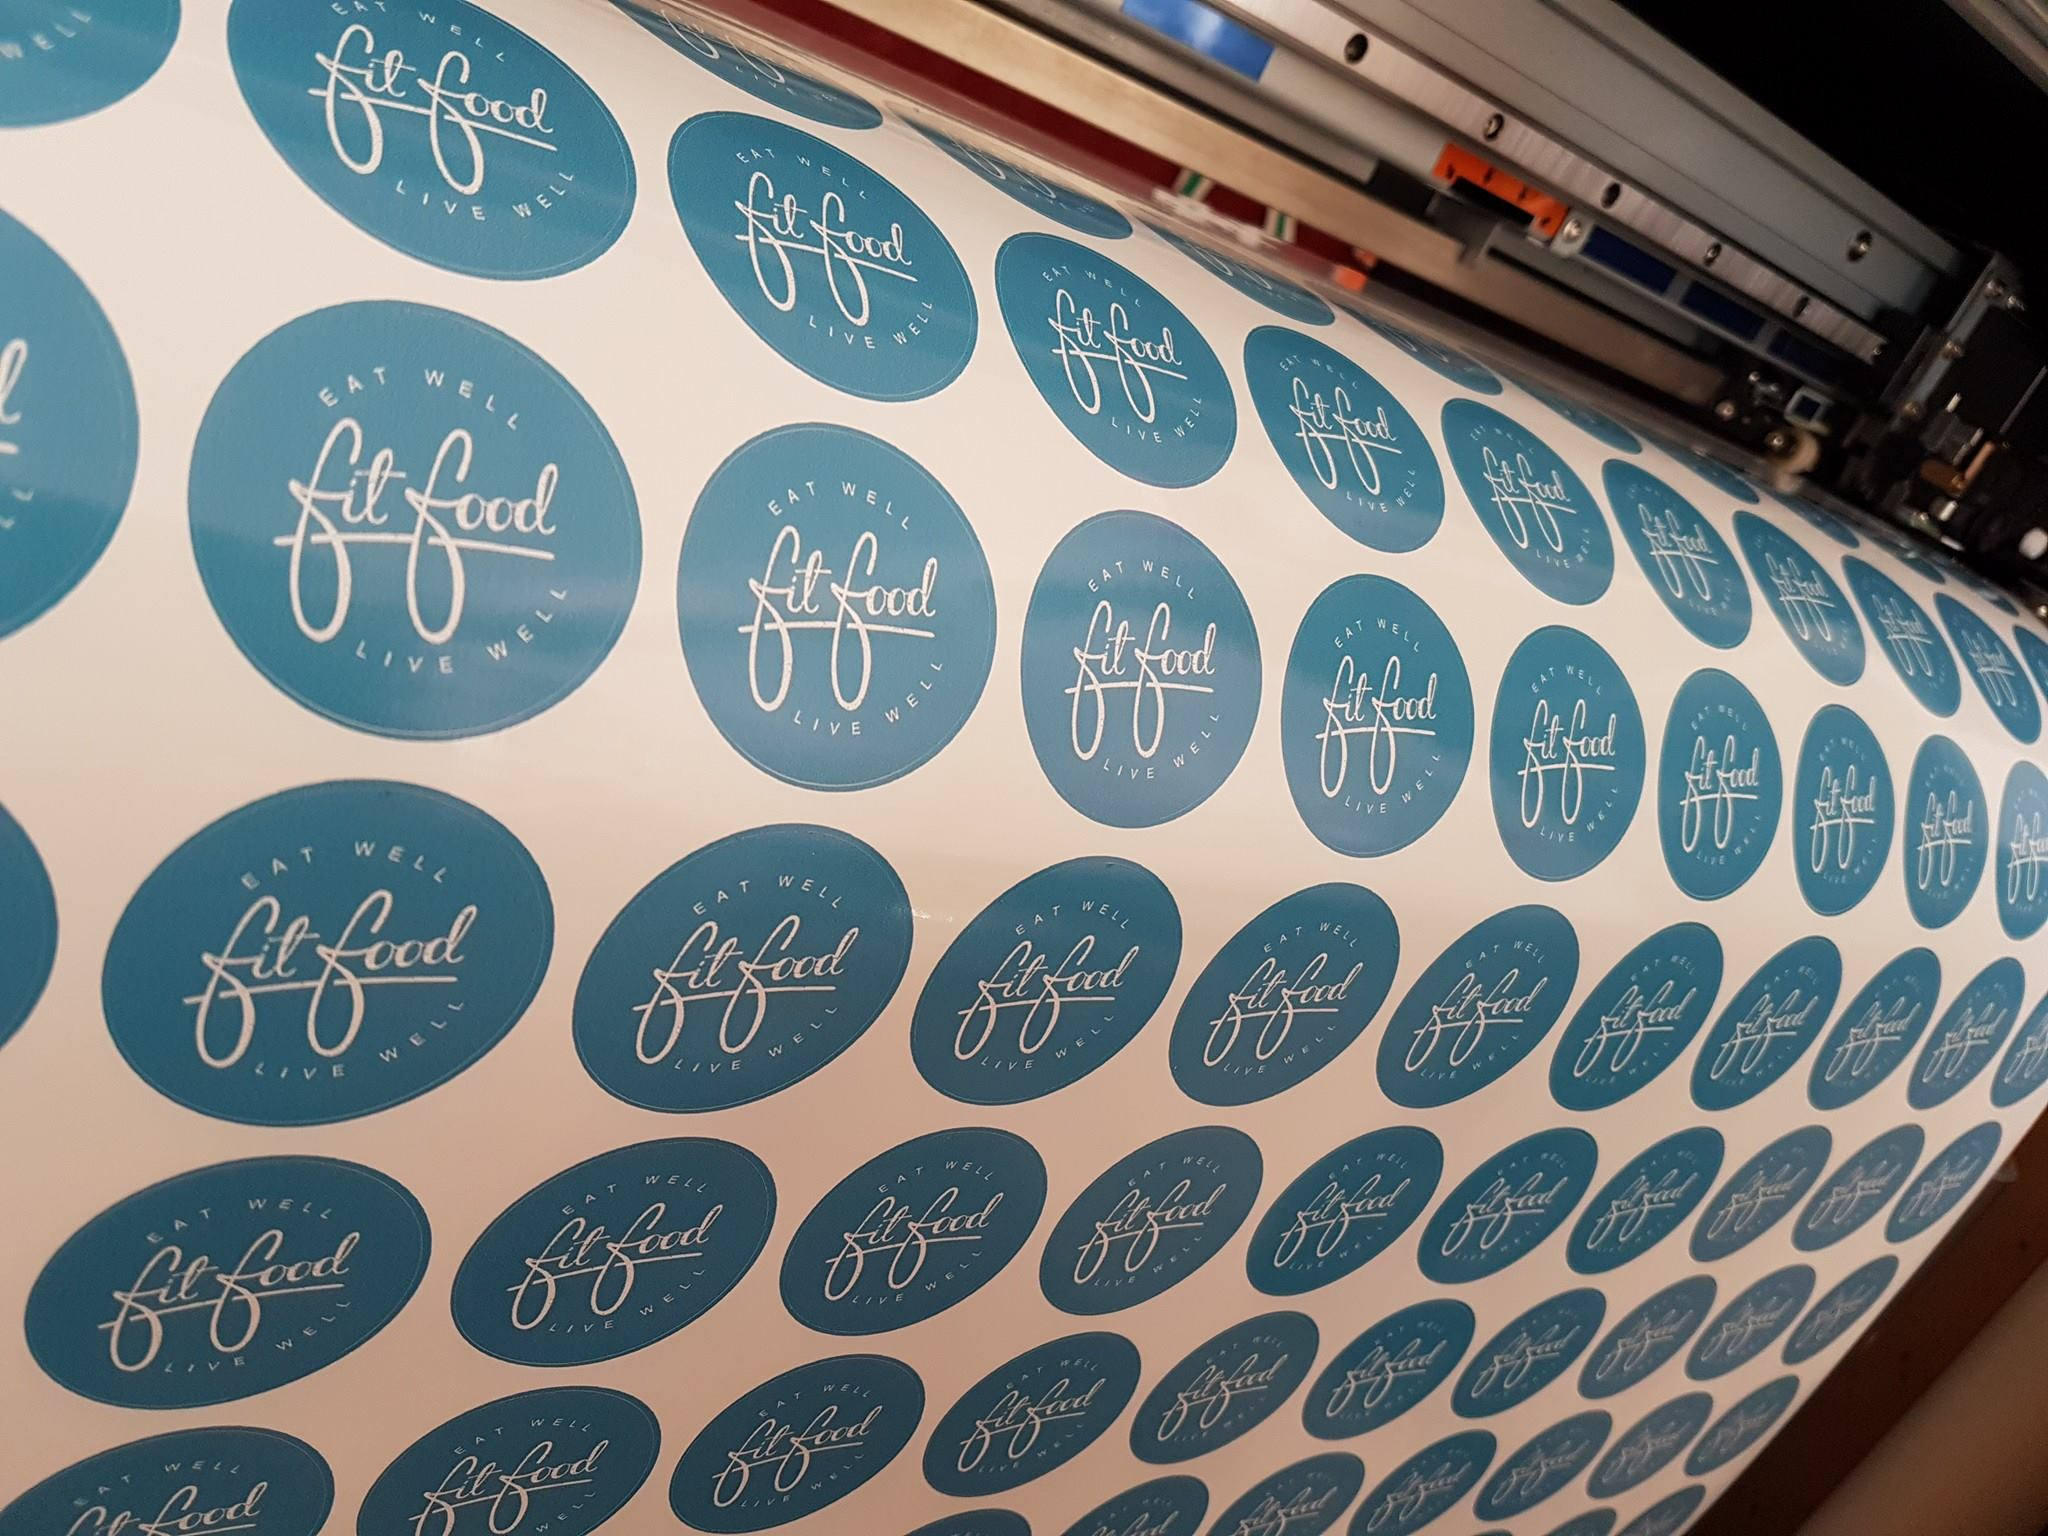 Two metres of vinyl stickers for the price one one